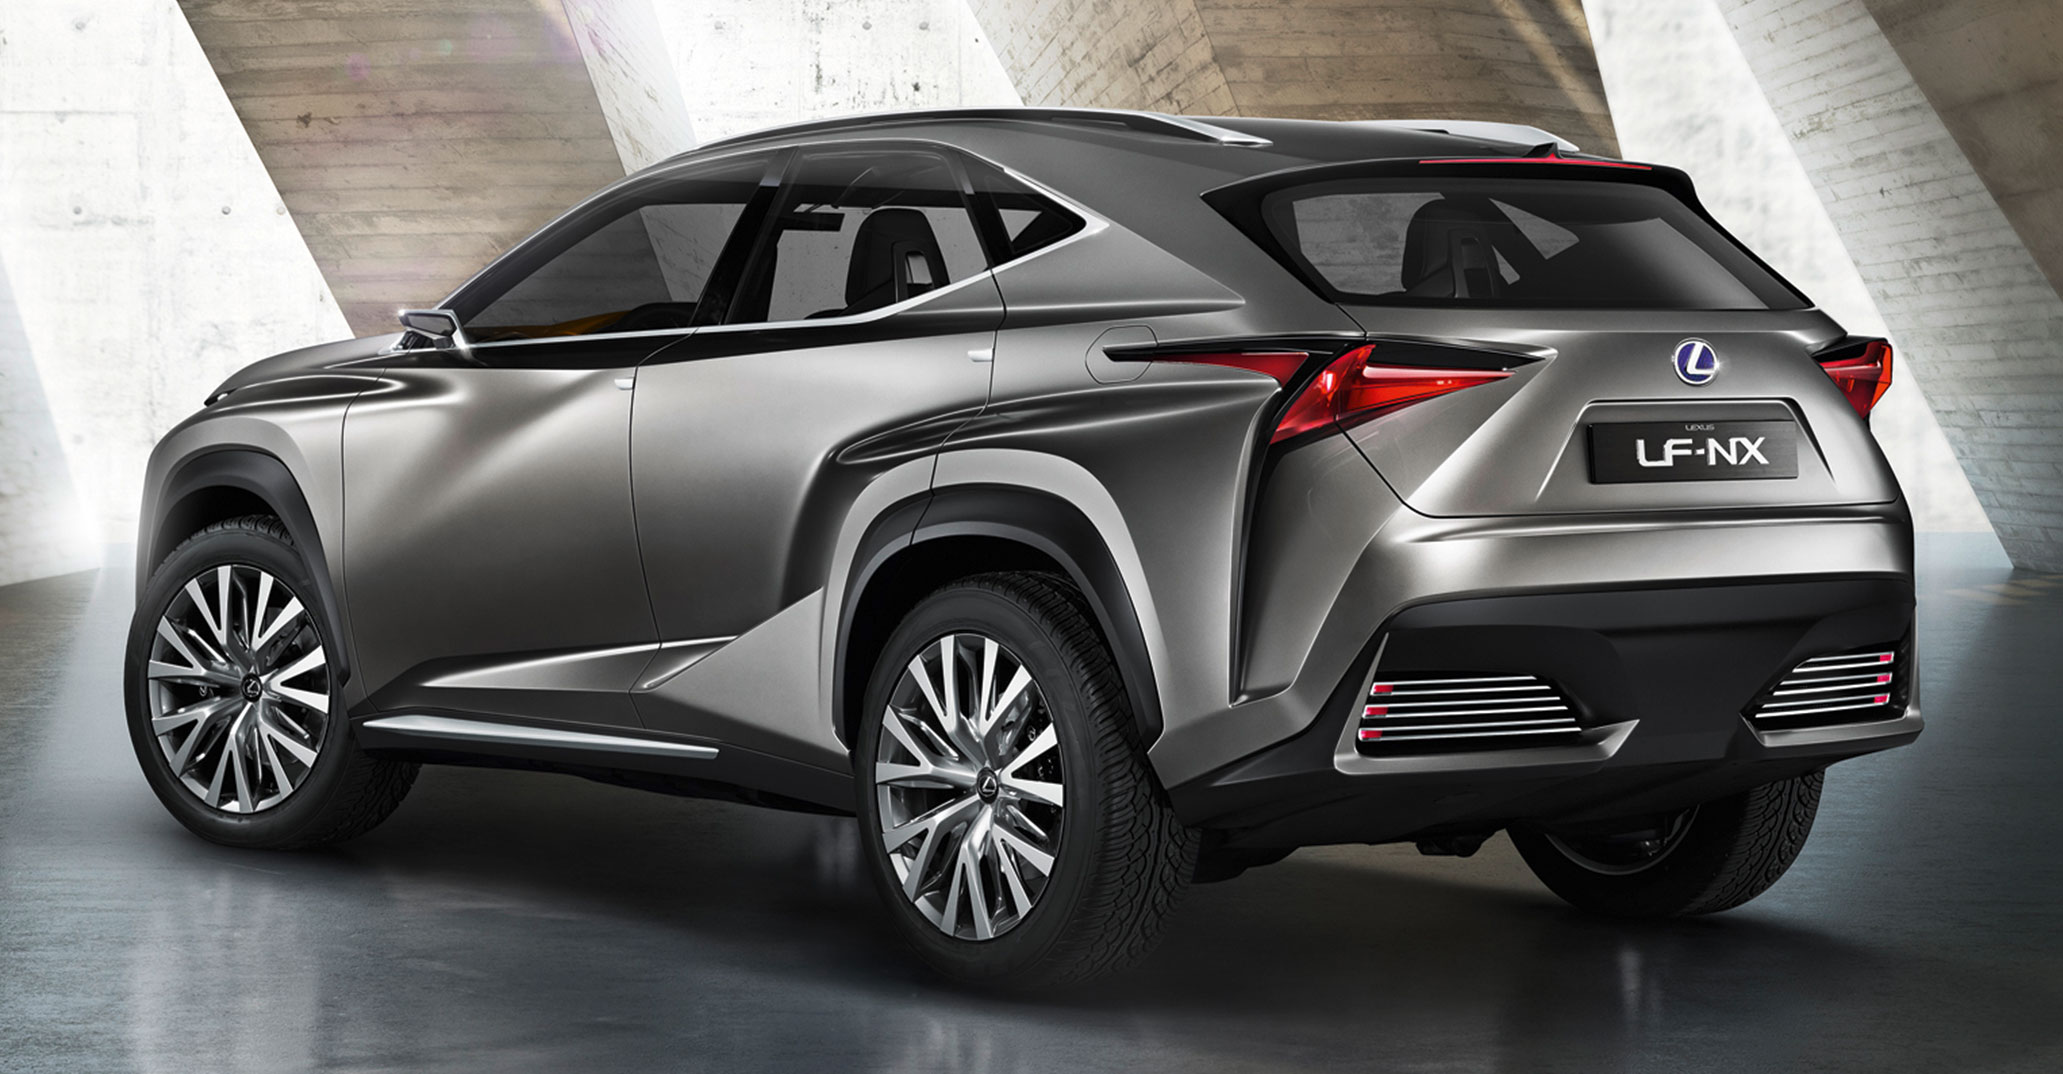 New Tucson 2018 >> Lexus LF-NX previews upcoming compact SUV Image 196484